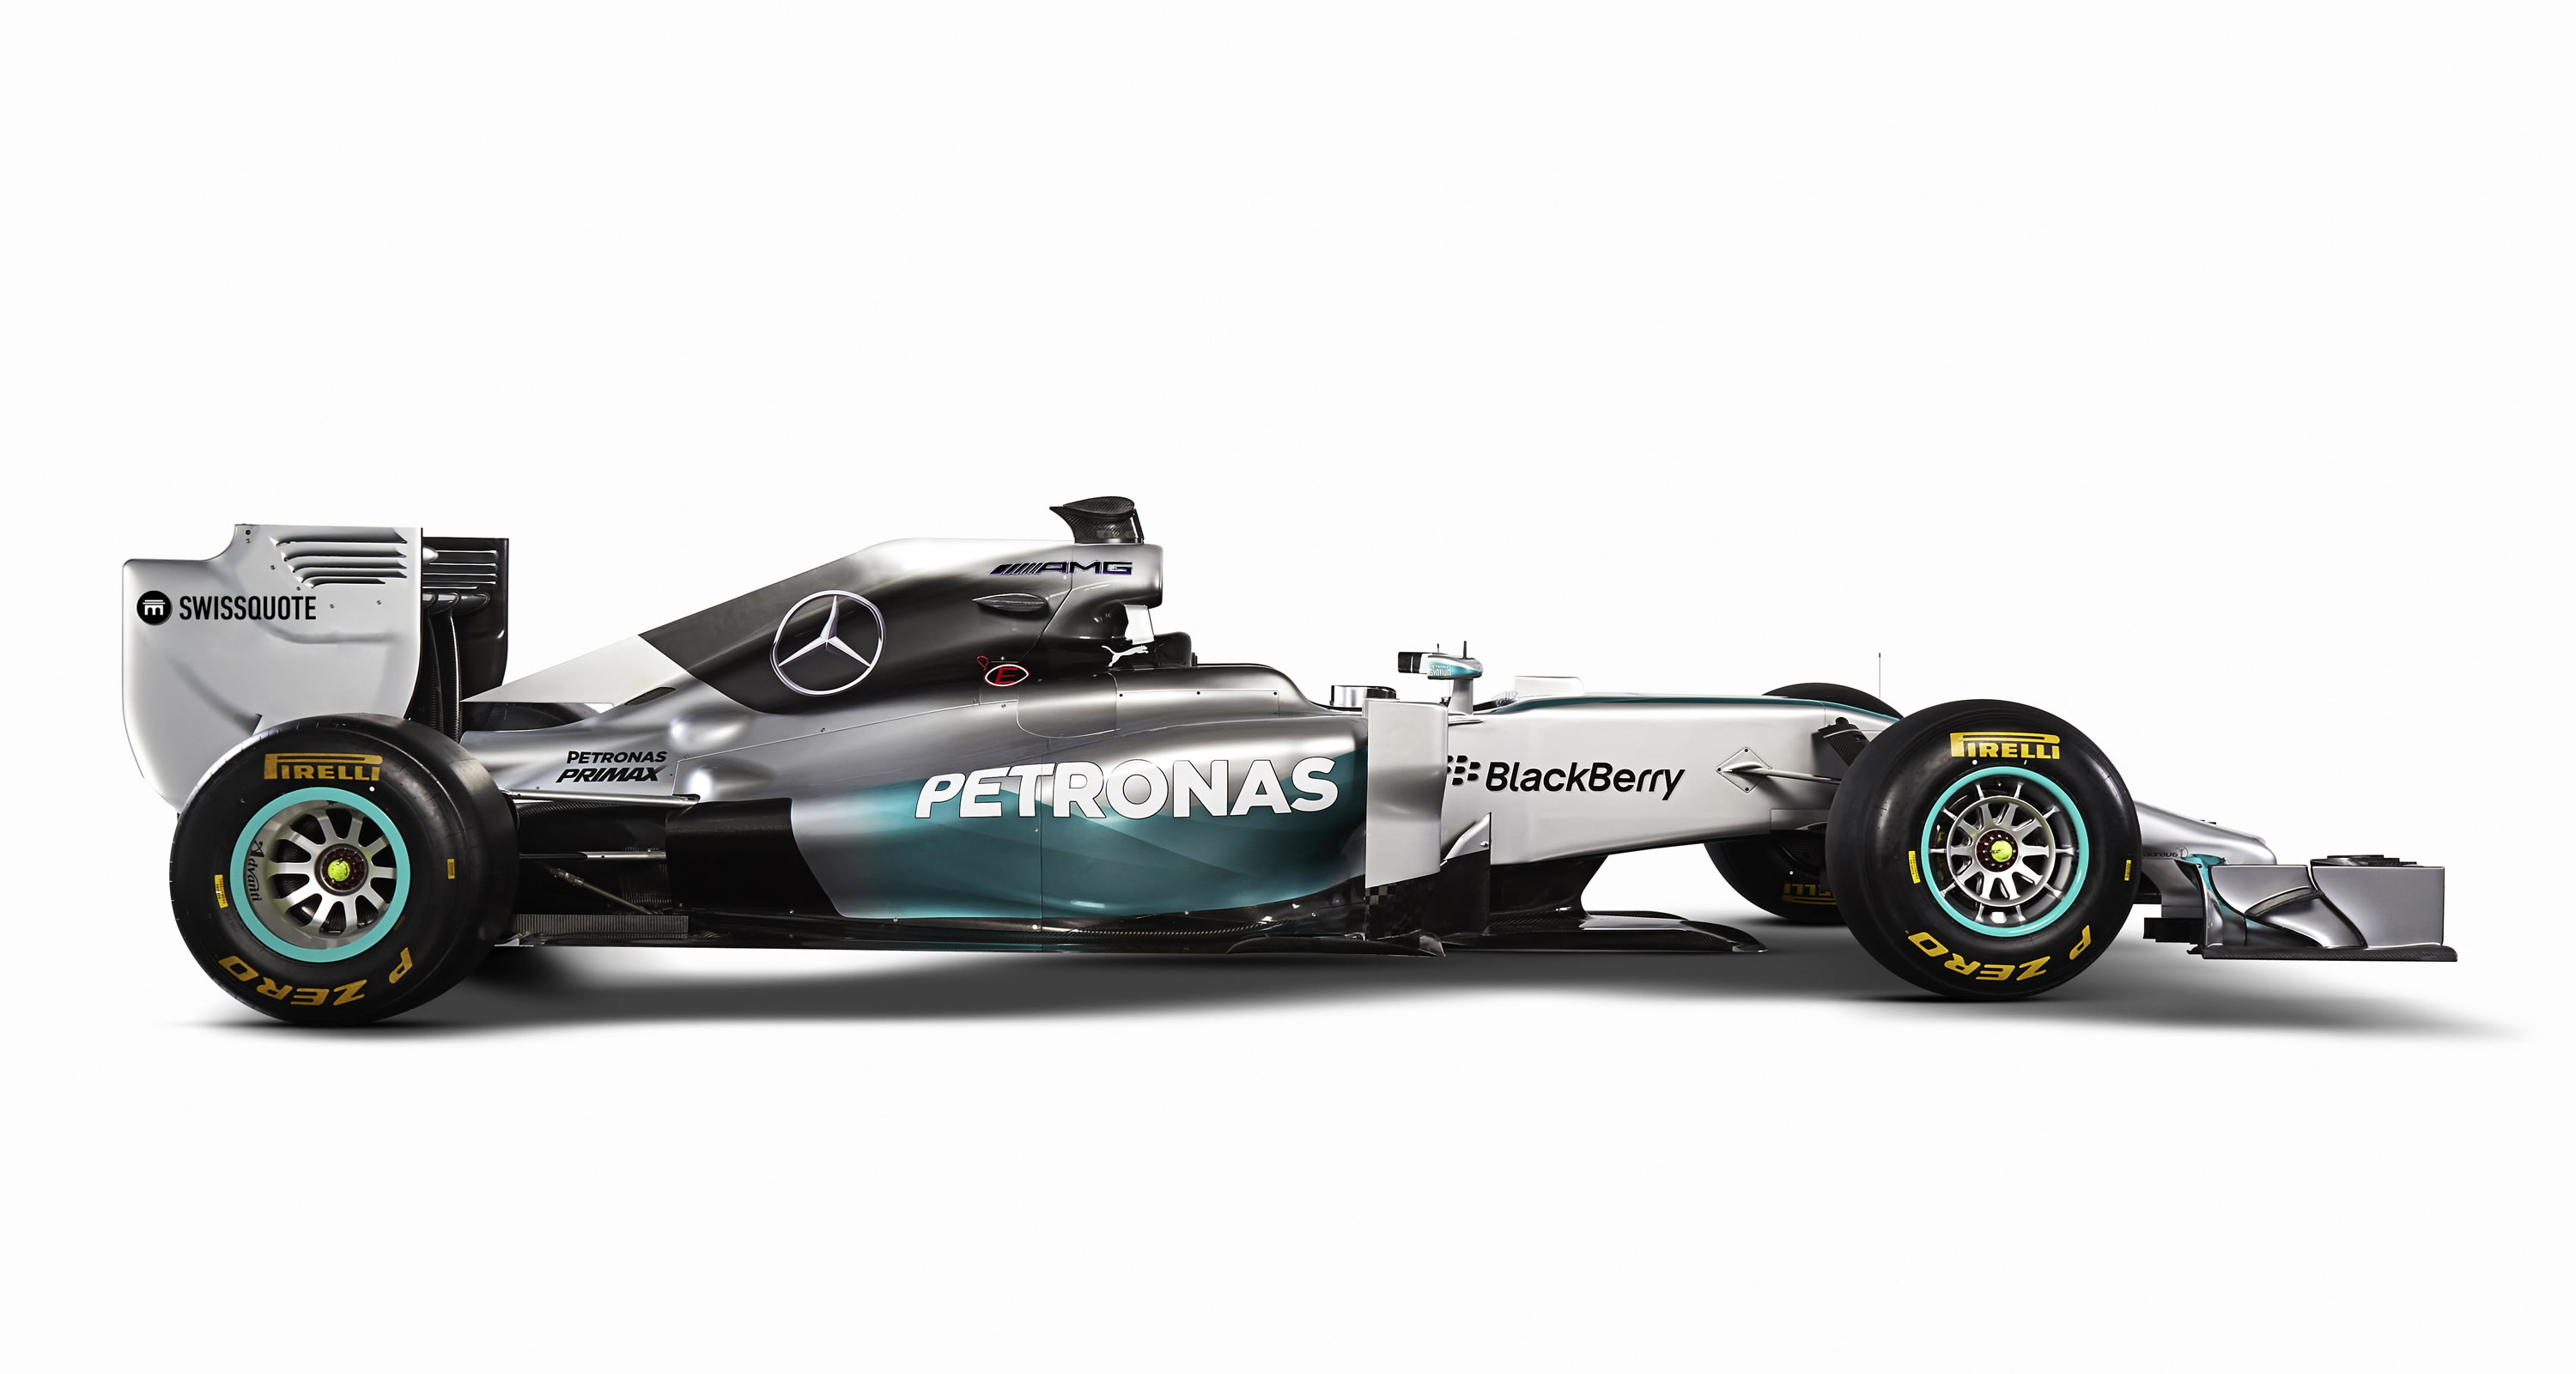 2014 mercedes benz amg w05 formula 1 car photos specs and for Mercedes benz f1